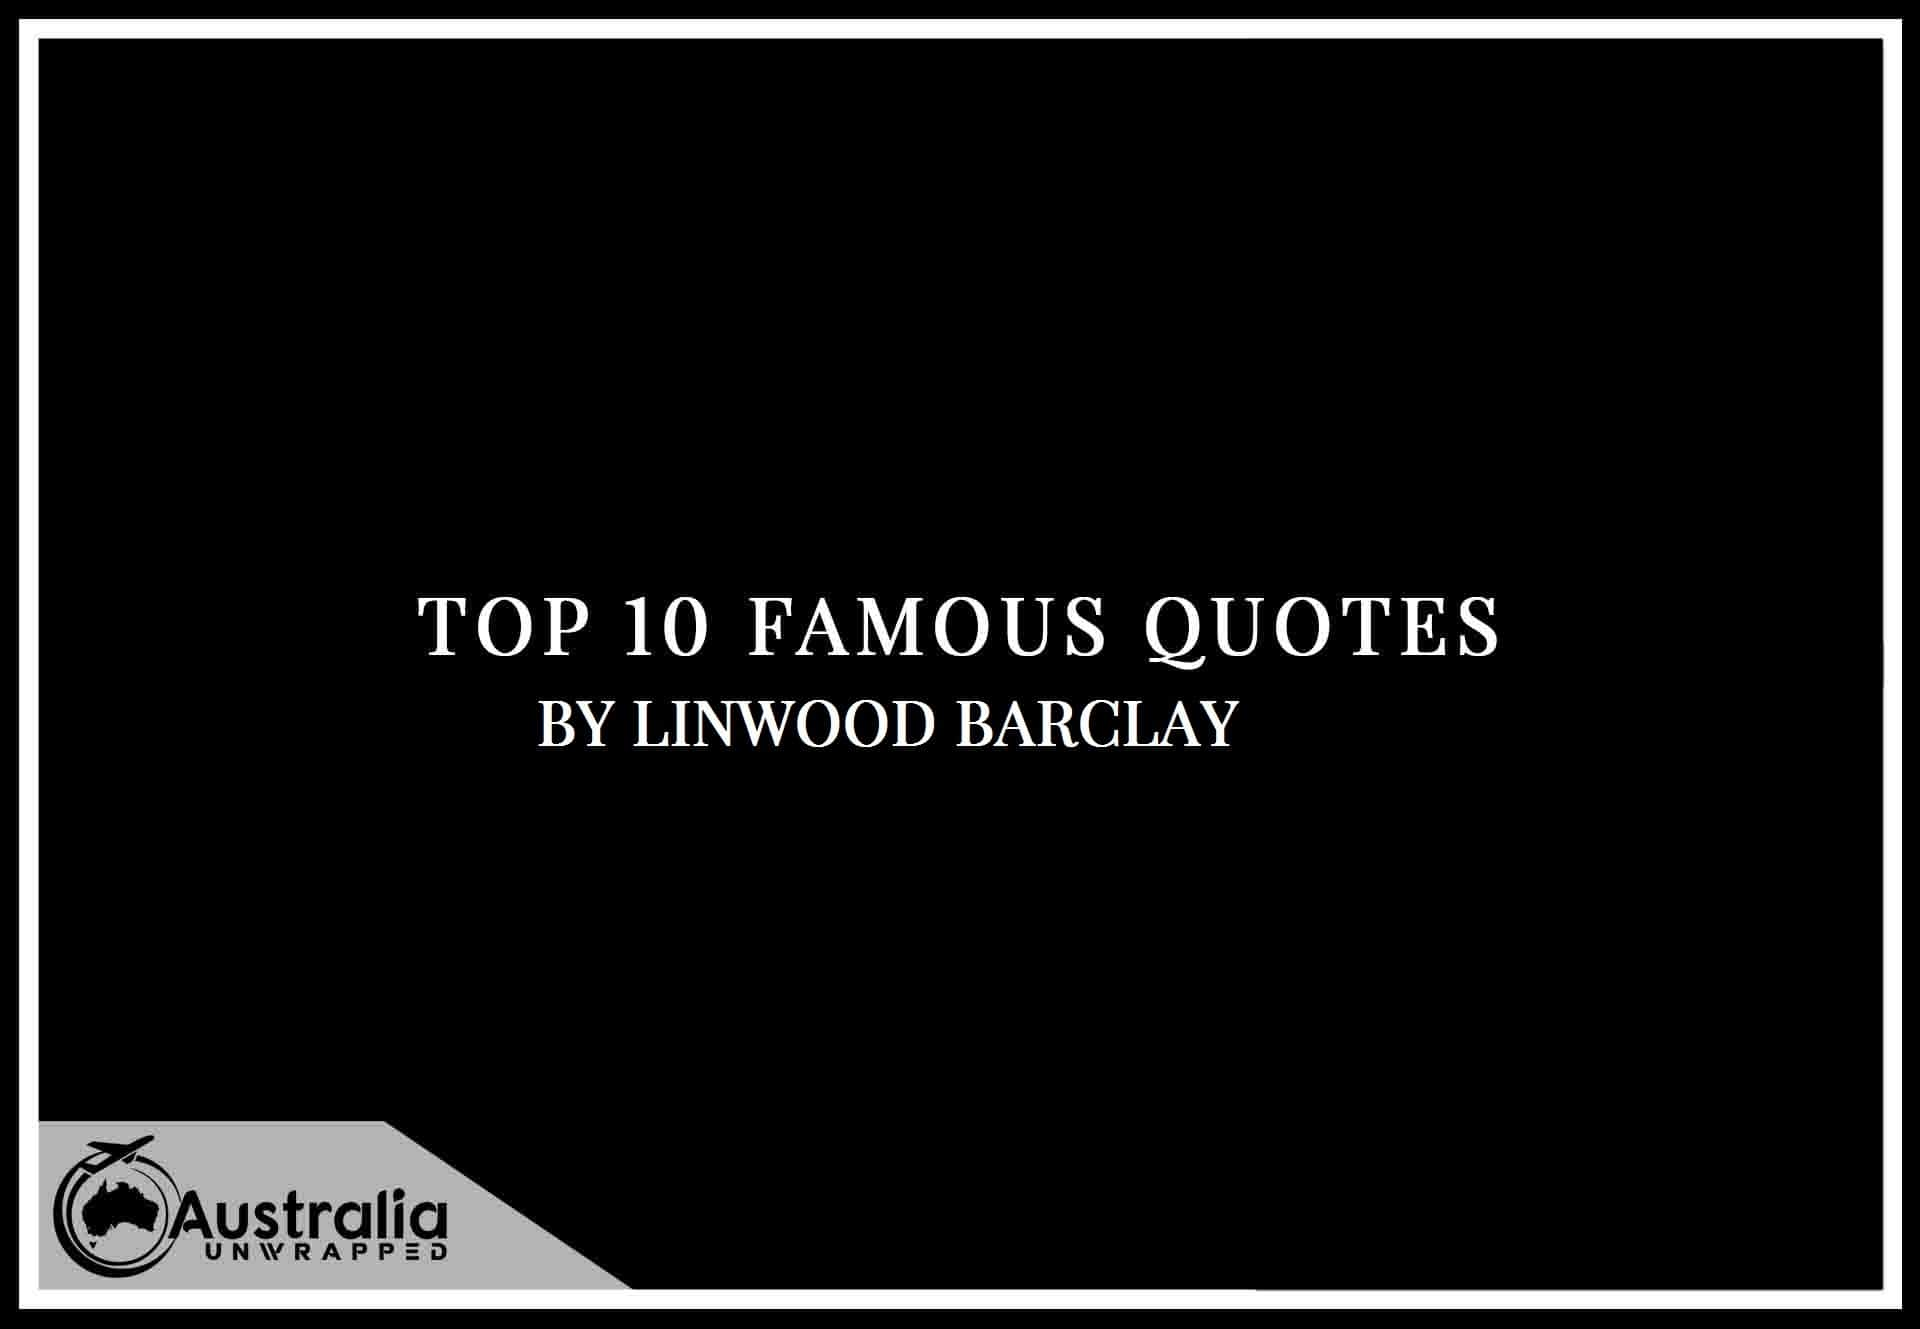 Linwood Barclay's Top 10 Popular and Famous Quotes